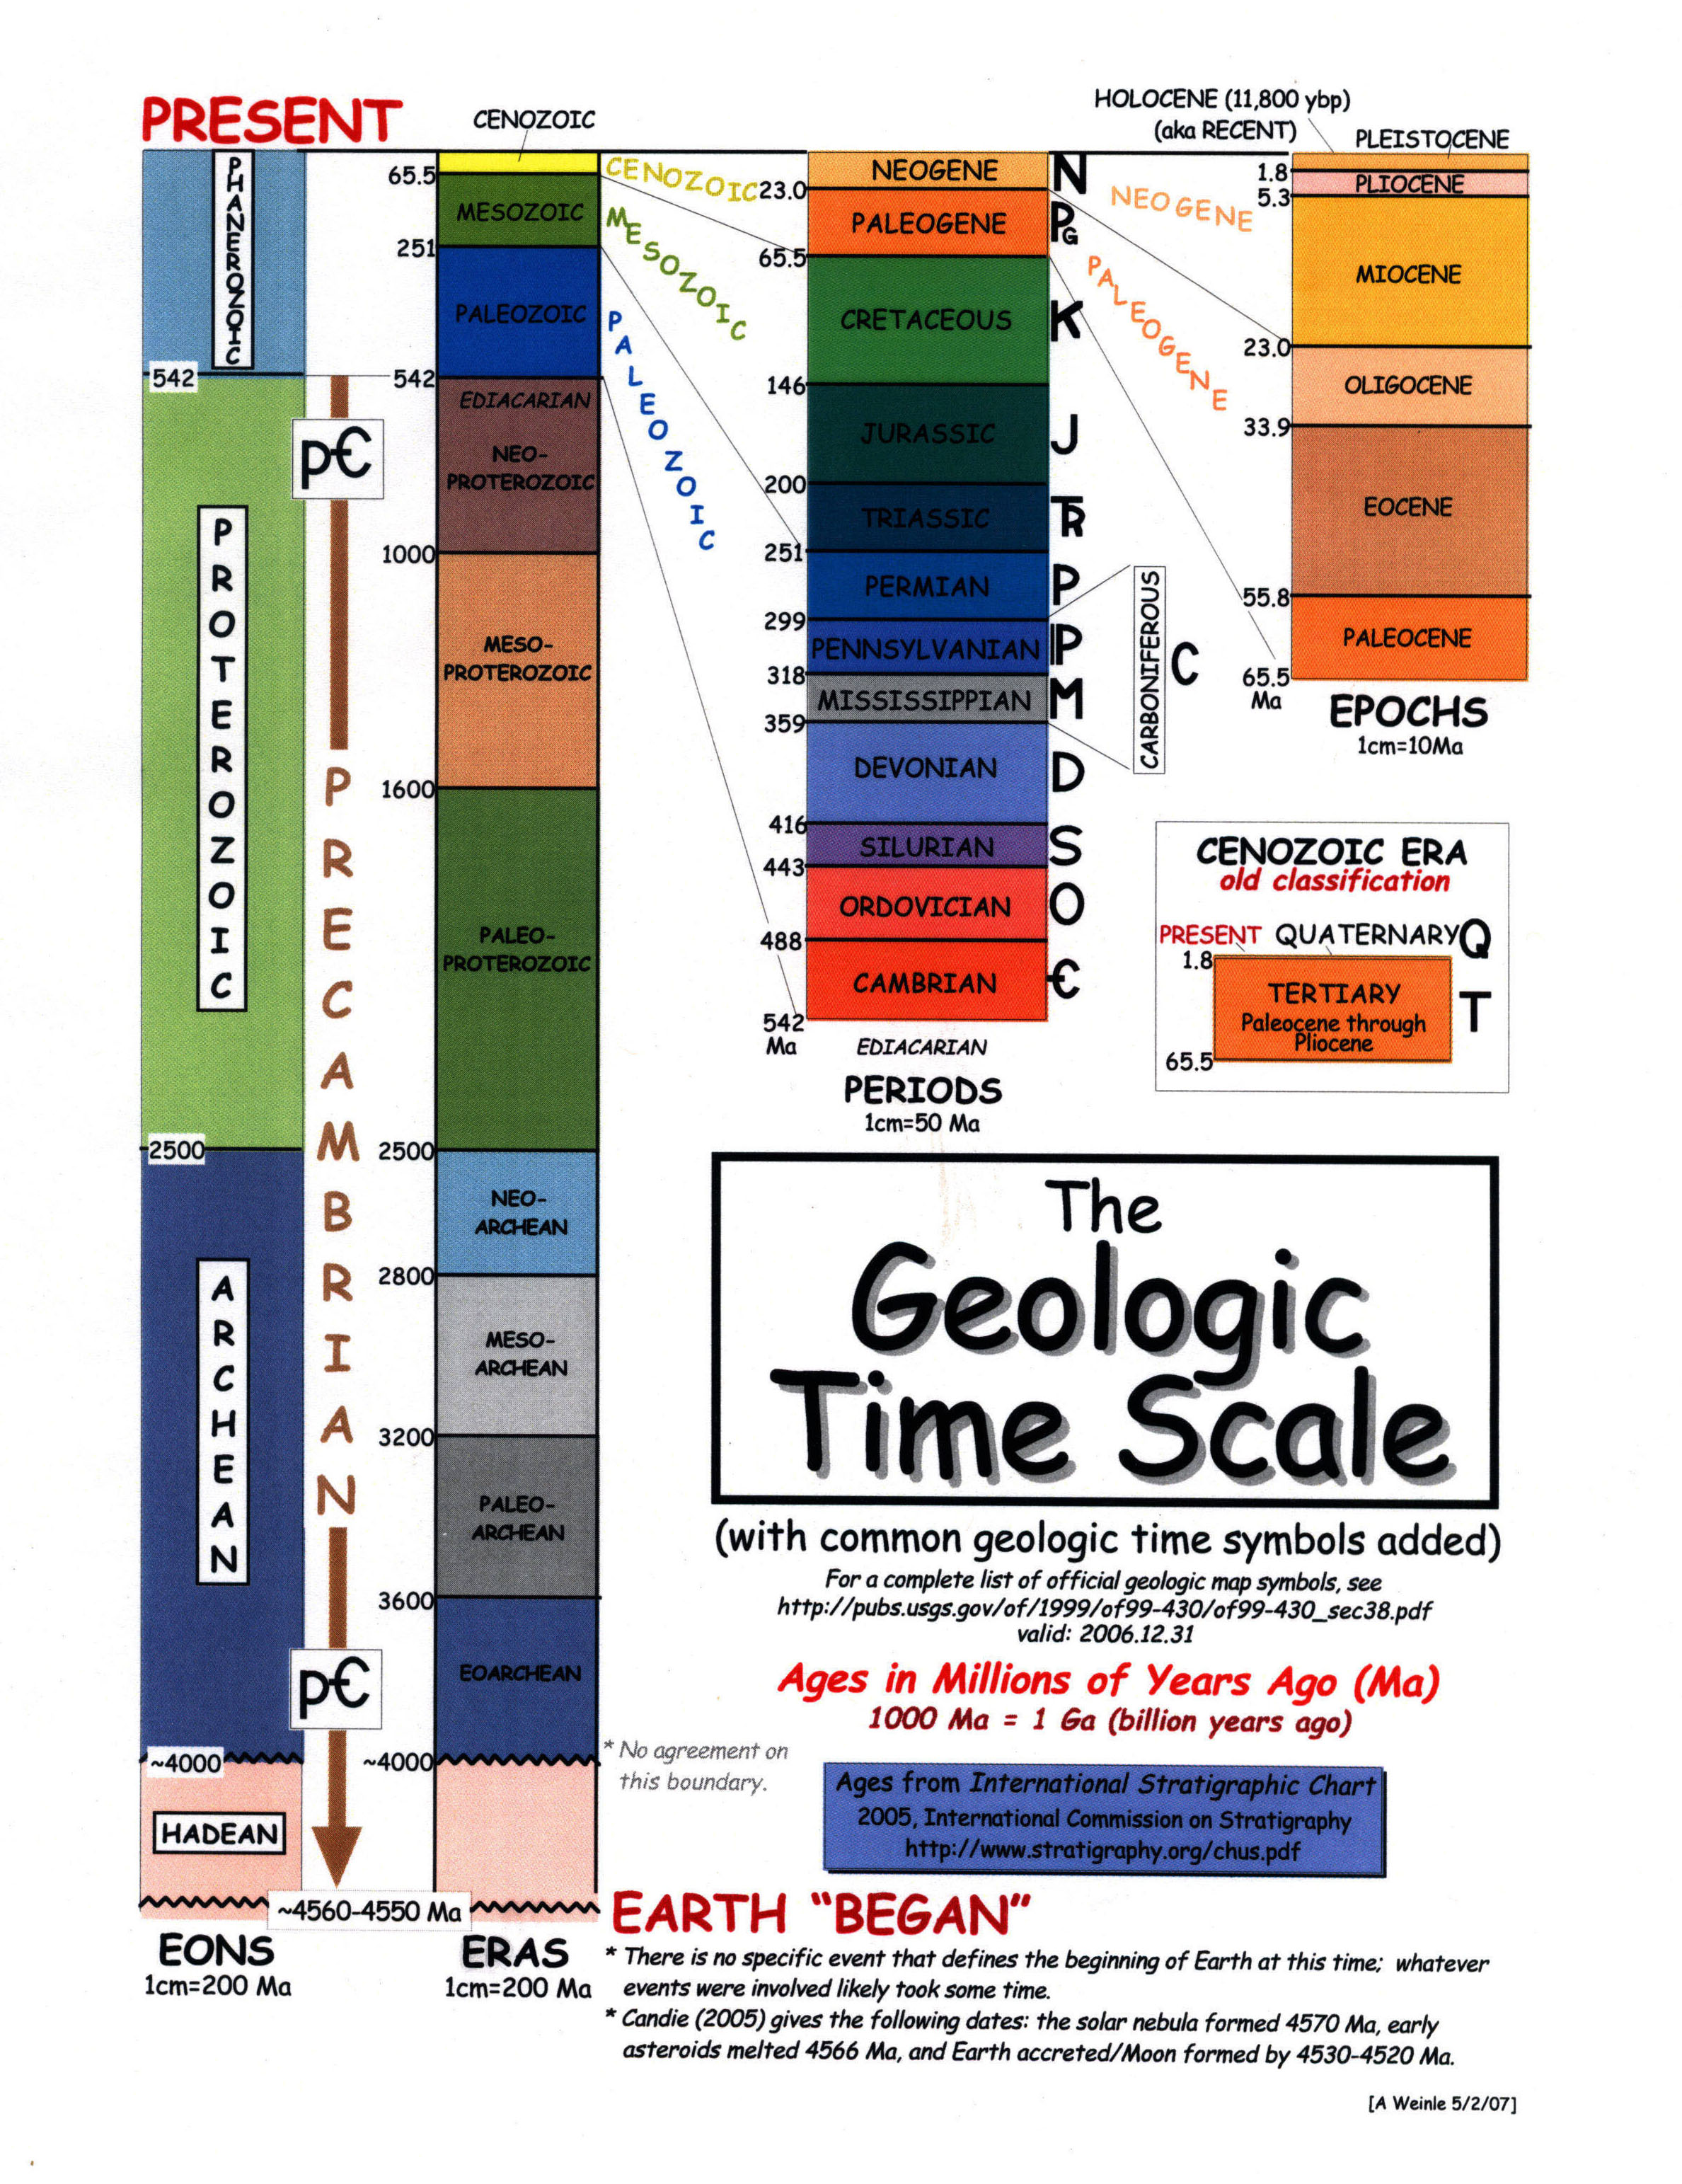 geologic-time-table.jpg